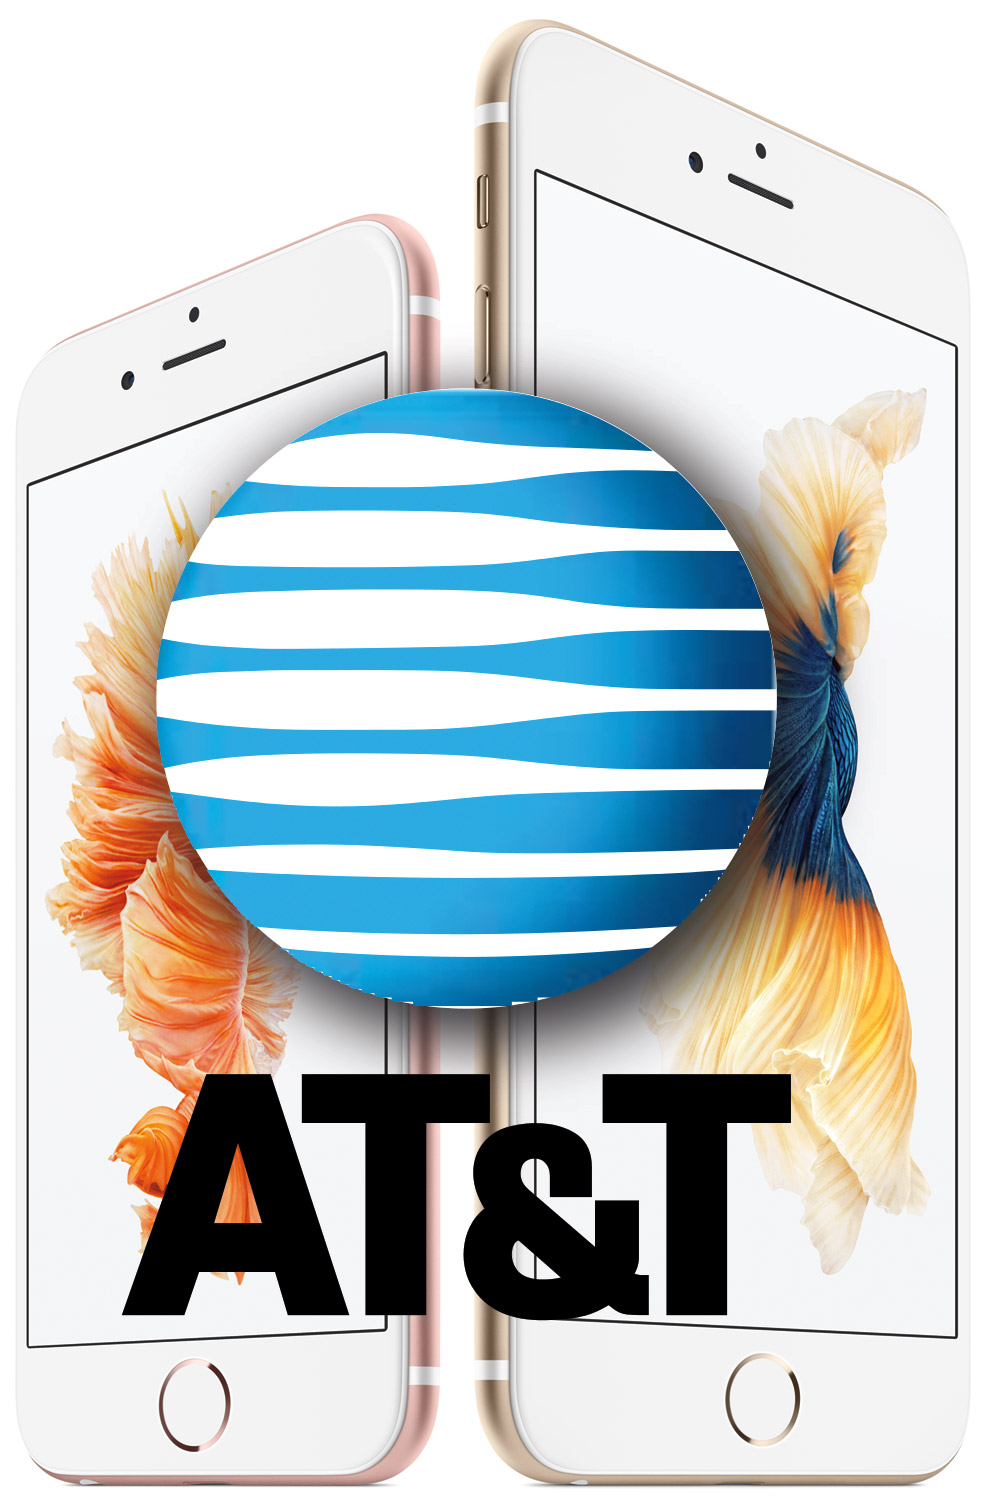 AT&T bumping up unlimited data plan fees by $5 a month